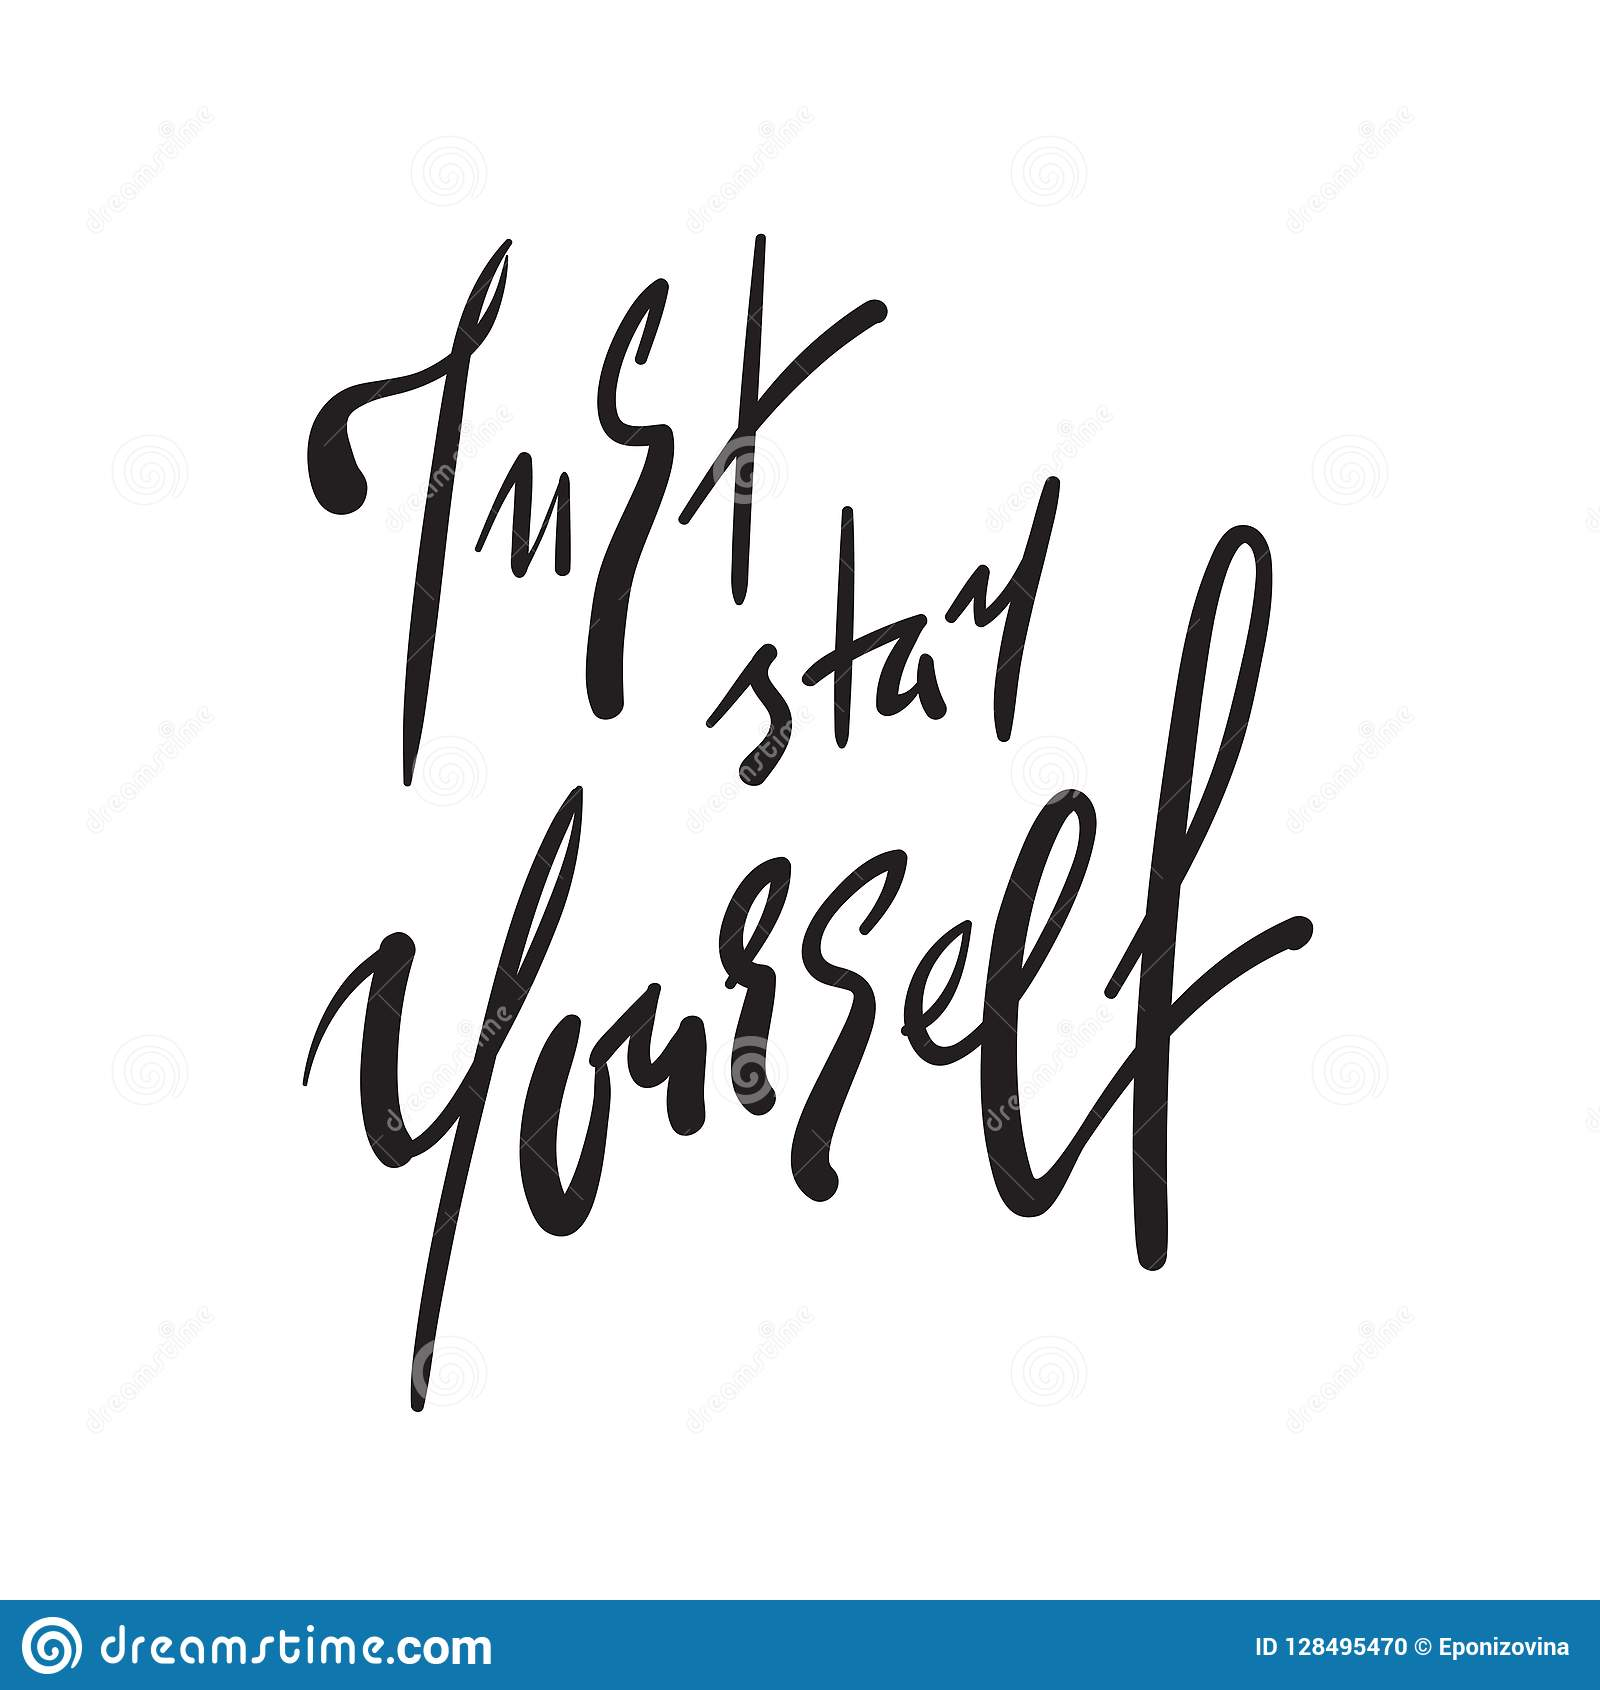 Just stay yourself - simple inspire and motivational quote. Hand drawn beautiful lettering. Print for inspirational poster, t-shir